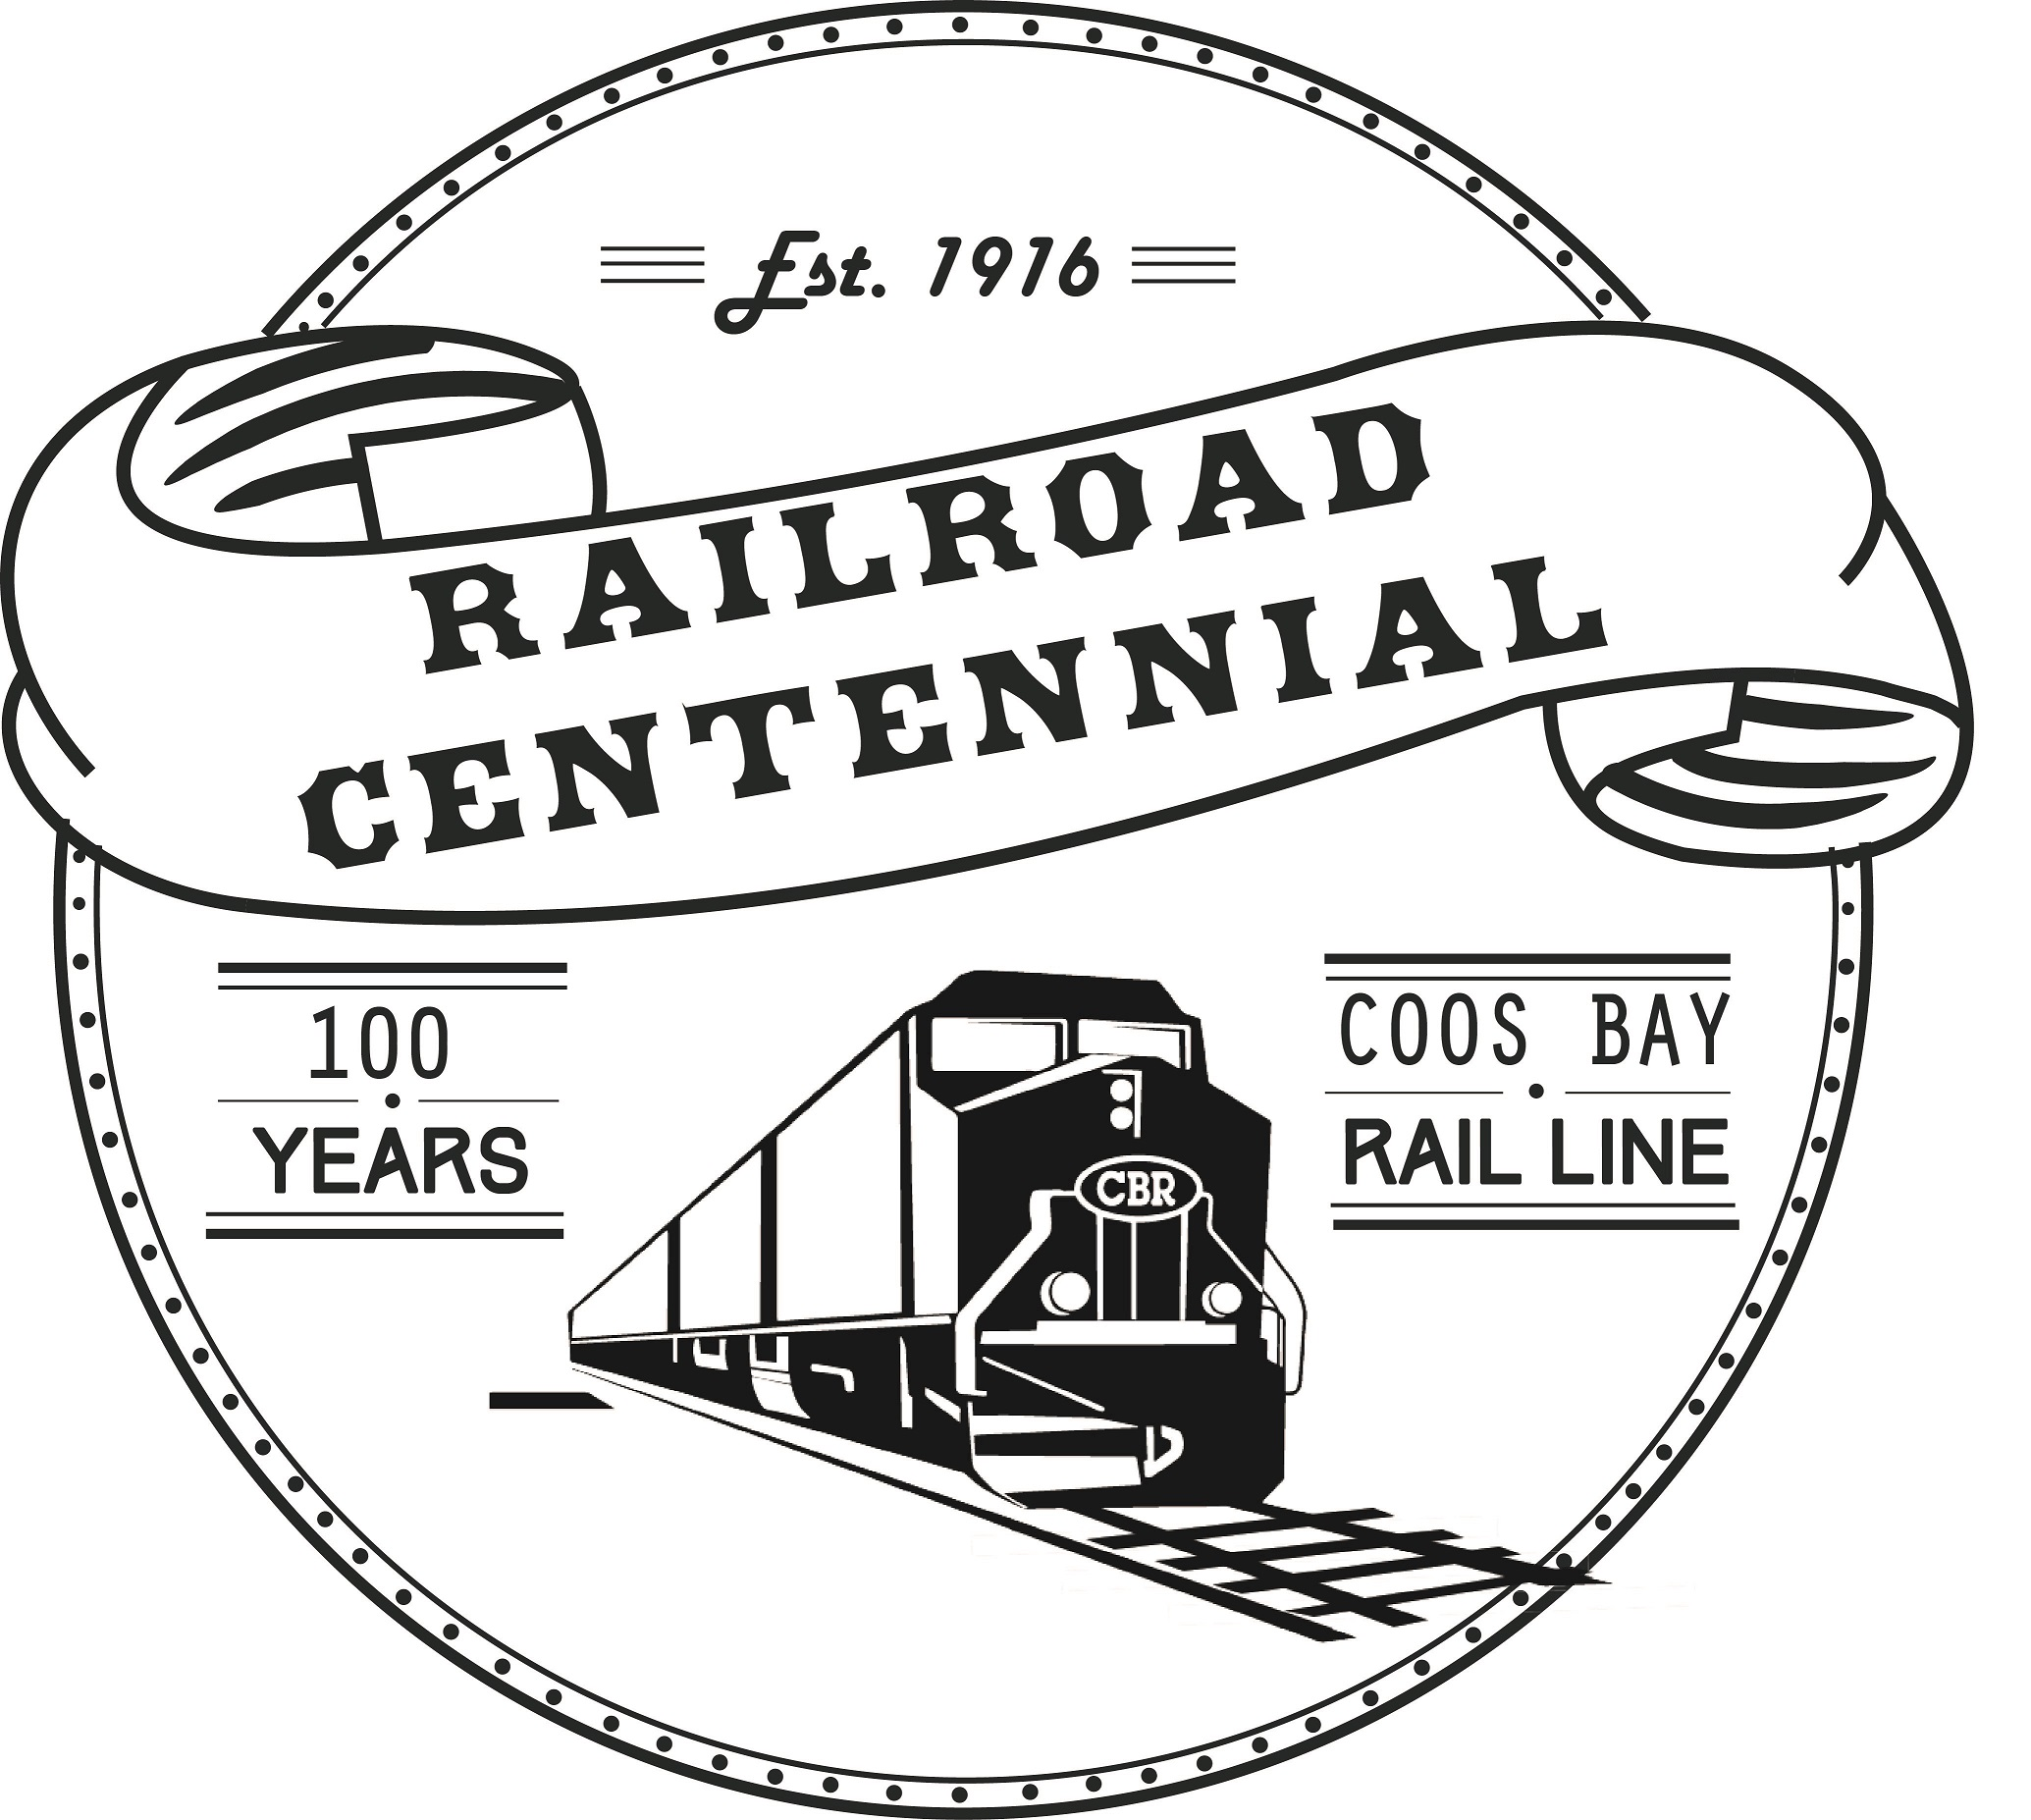 medium resolution of port of coos bay celebrates 100 years of the coos bay rail line at the railroad centennial celebration port of coos bay oregon s seaport